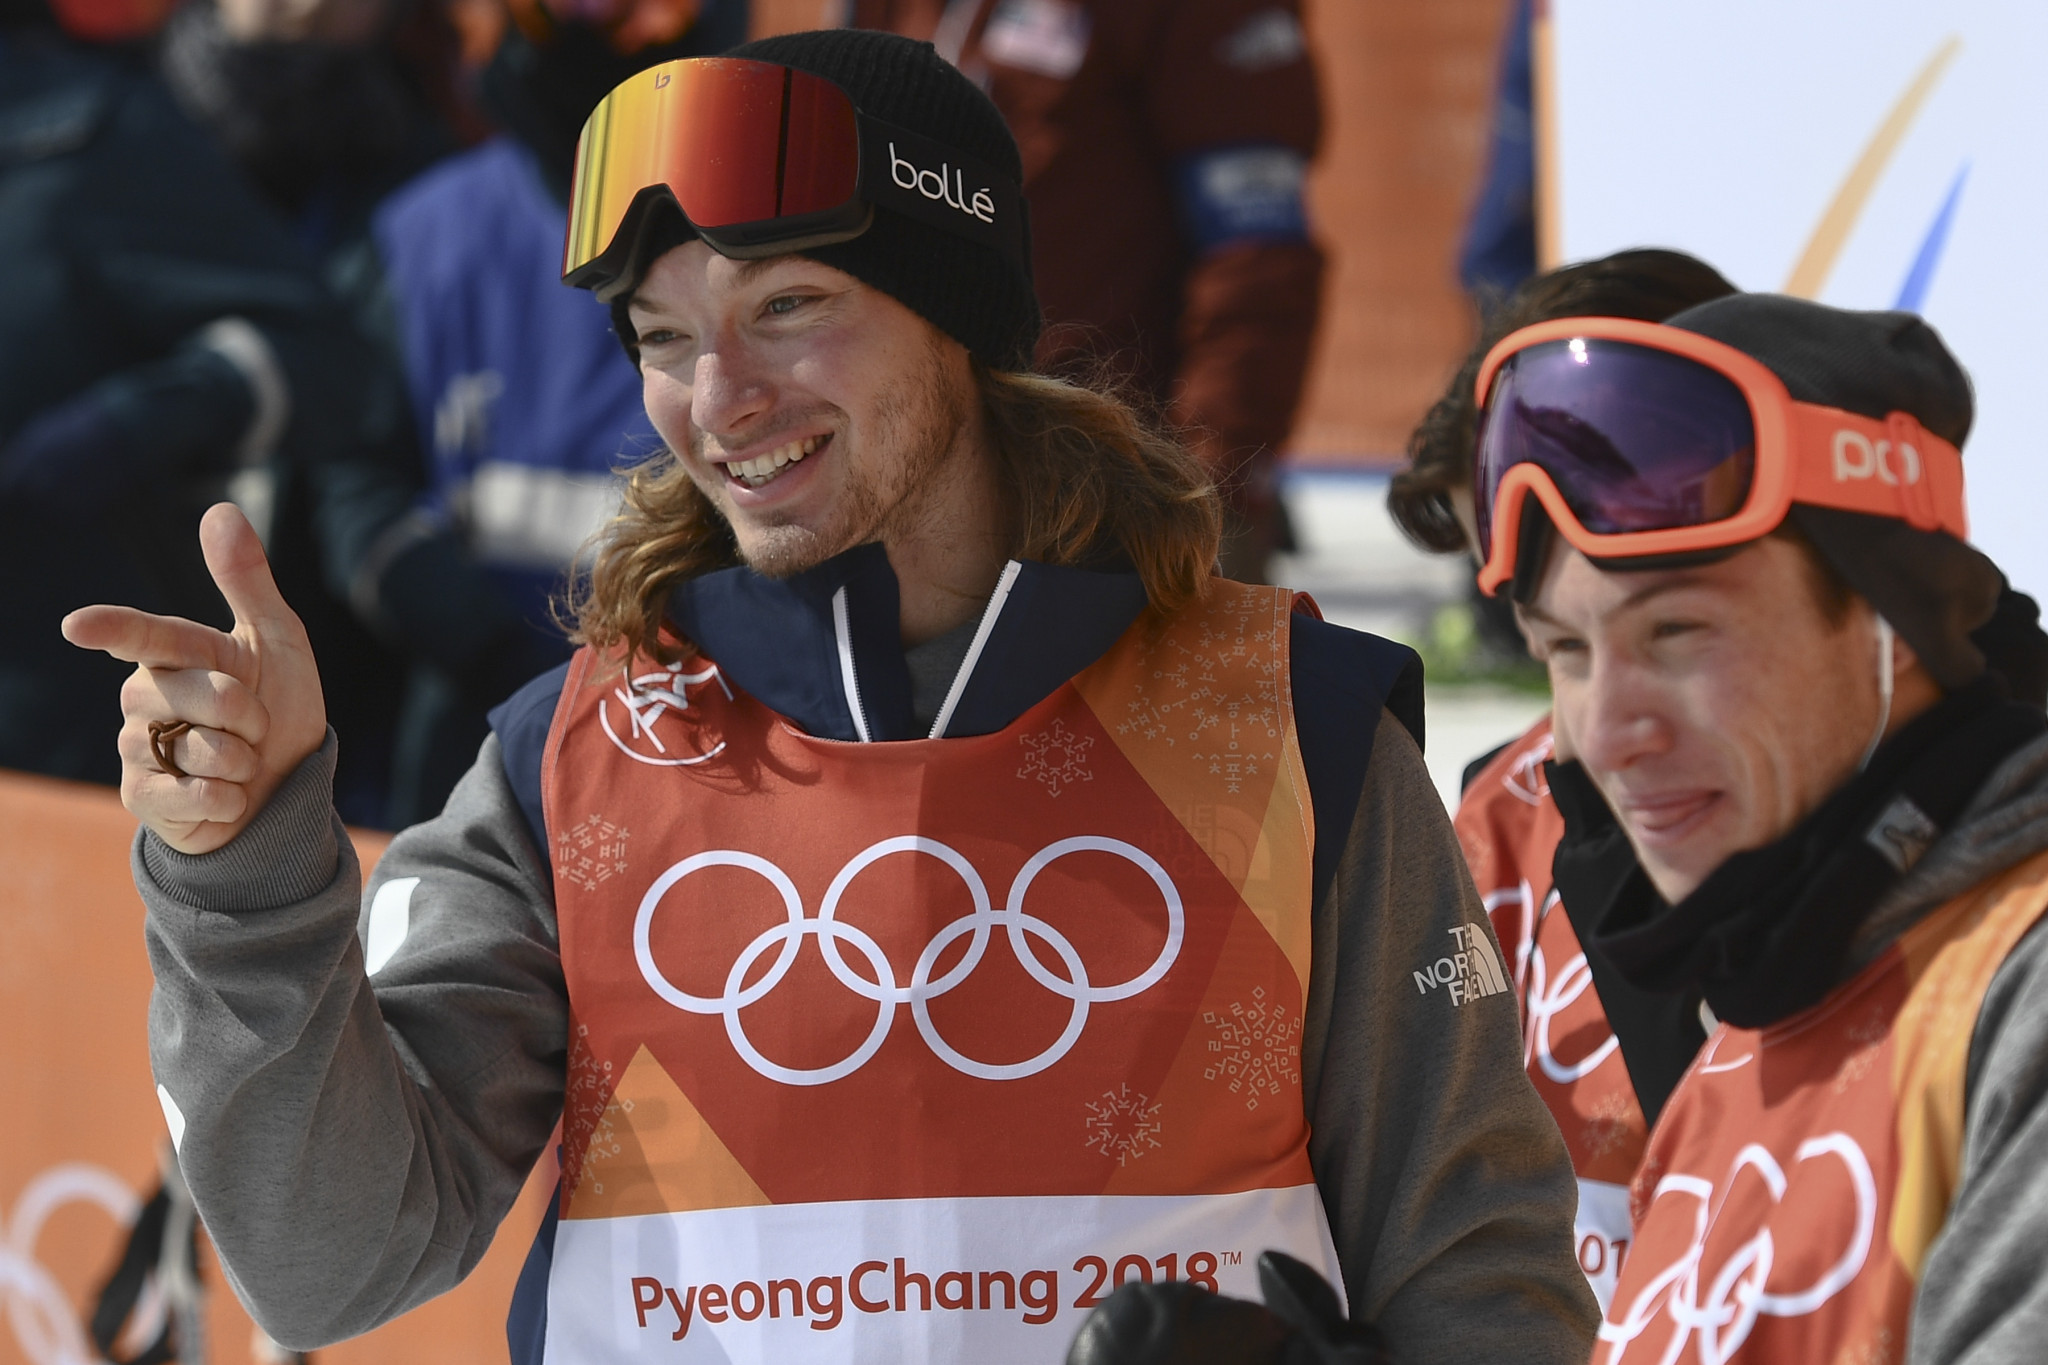 The United States' David Wise produced a stunning final run to successfully defend his Olympic halfpipe title at Pyeongchang 2018 ©Getty Images